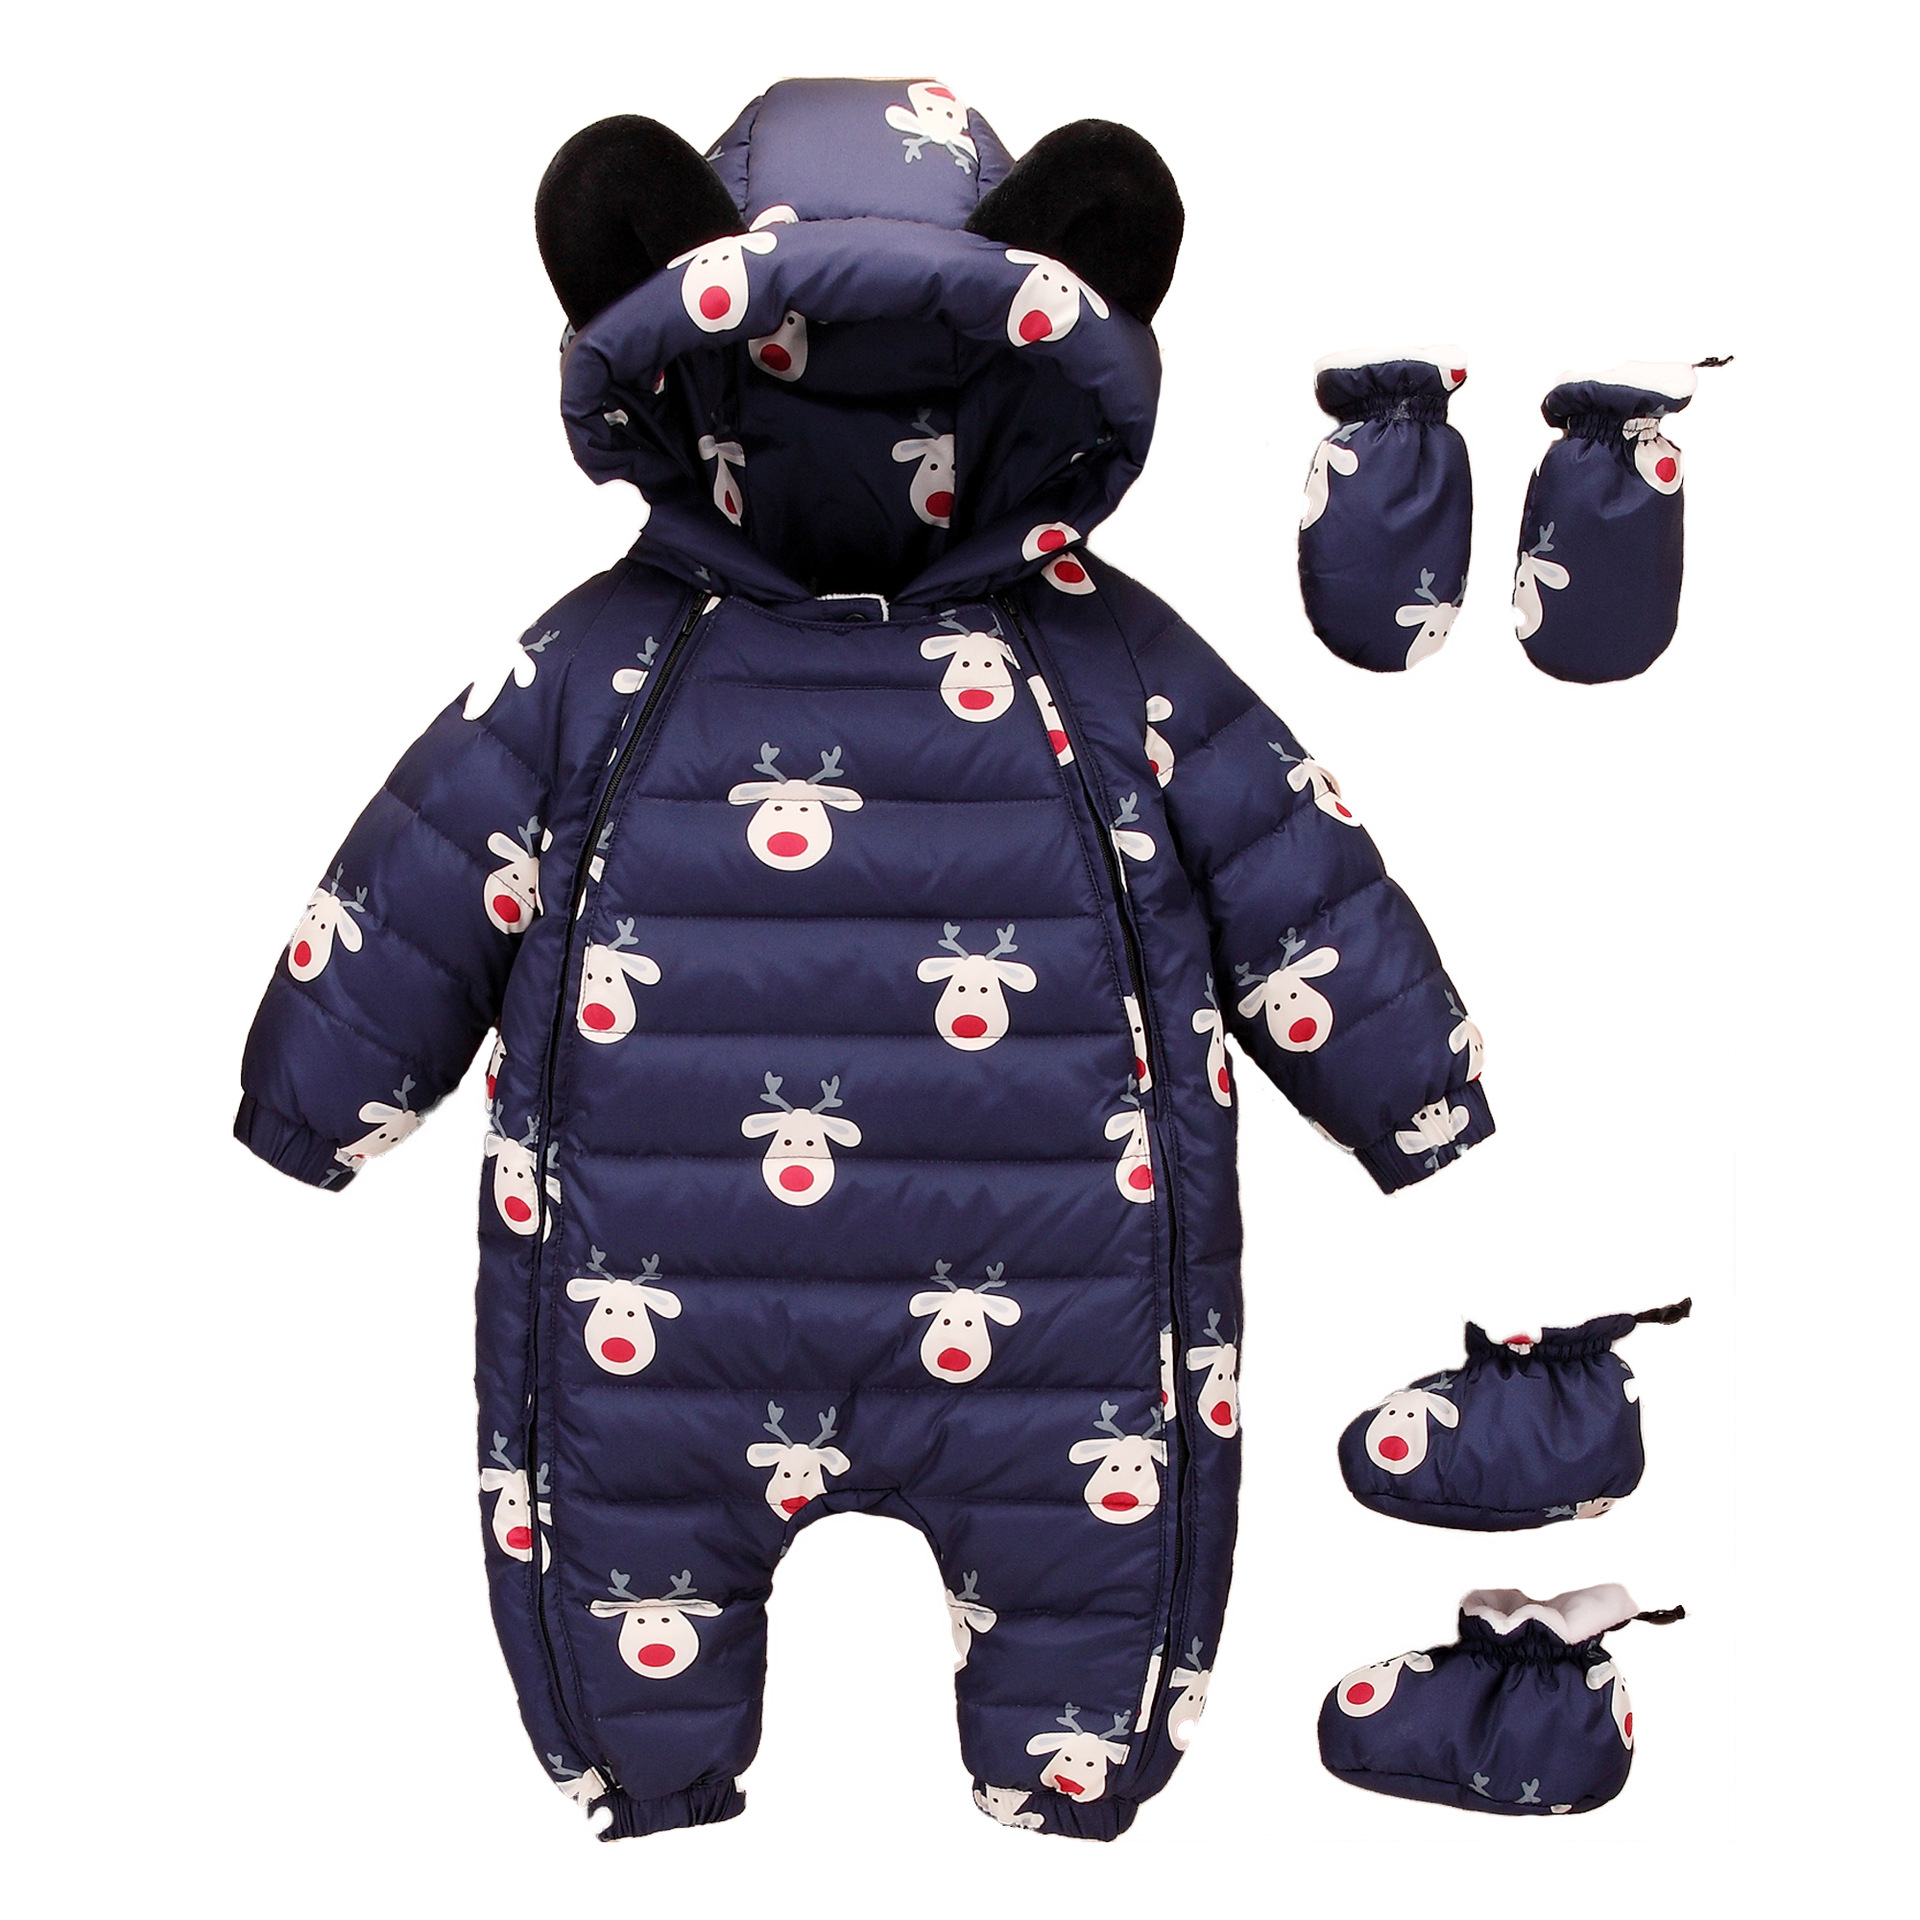 BINIDUCKLING 2018 NEW Baby Rompers Winter Down Thick Warm Baby boy Clothing Hooded Jumpsuit Kids Newborn Outwear 3PICS Carton 2017 new baby rompers winter thick warm baby boy clothing long sleeve hooded jumpsuit kids newborn outwear for 0 12m baby girls